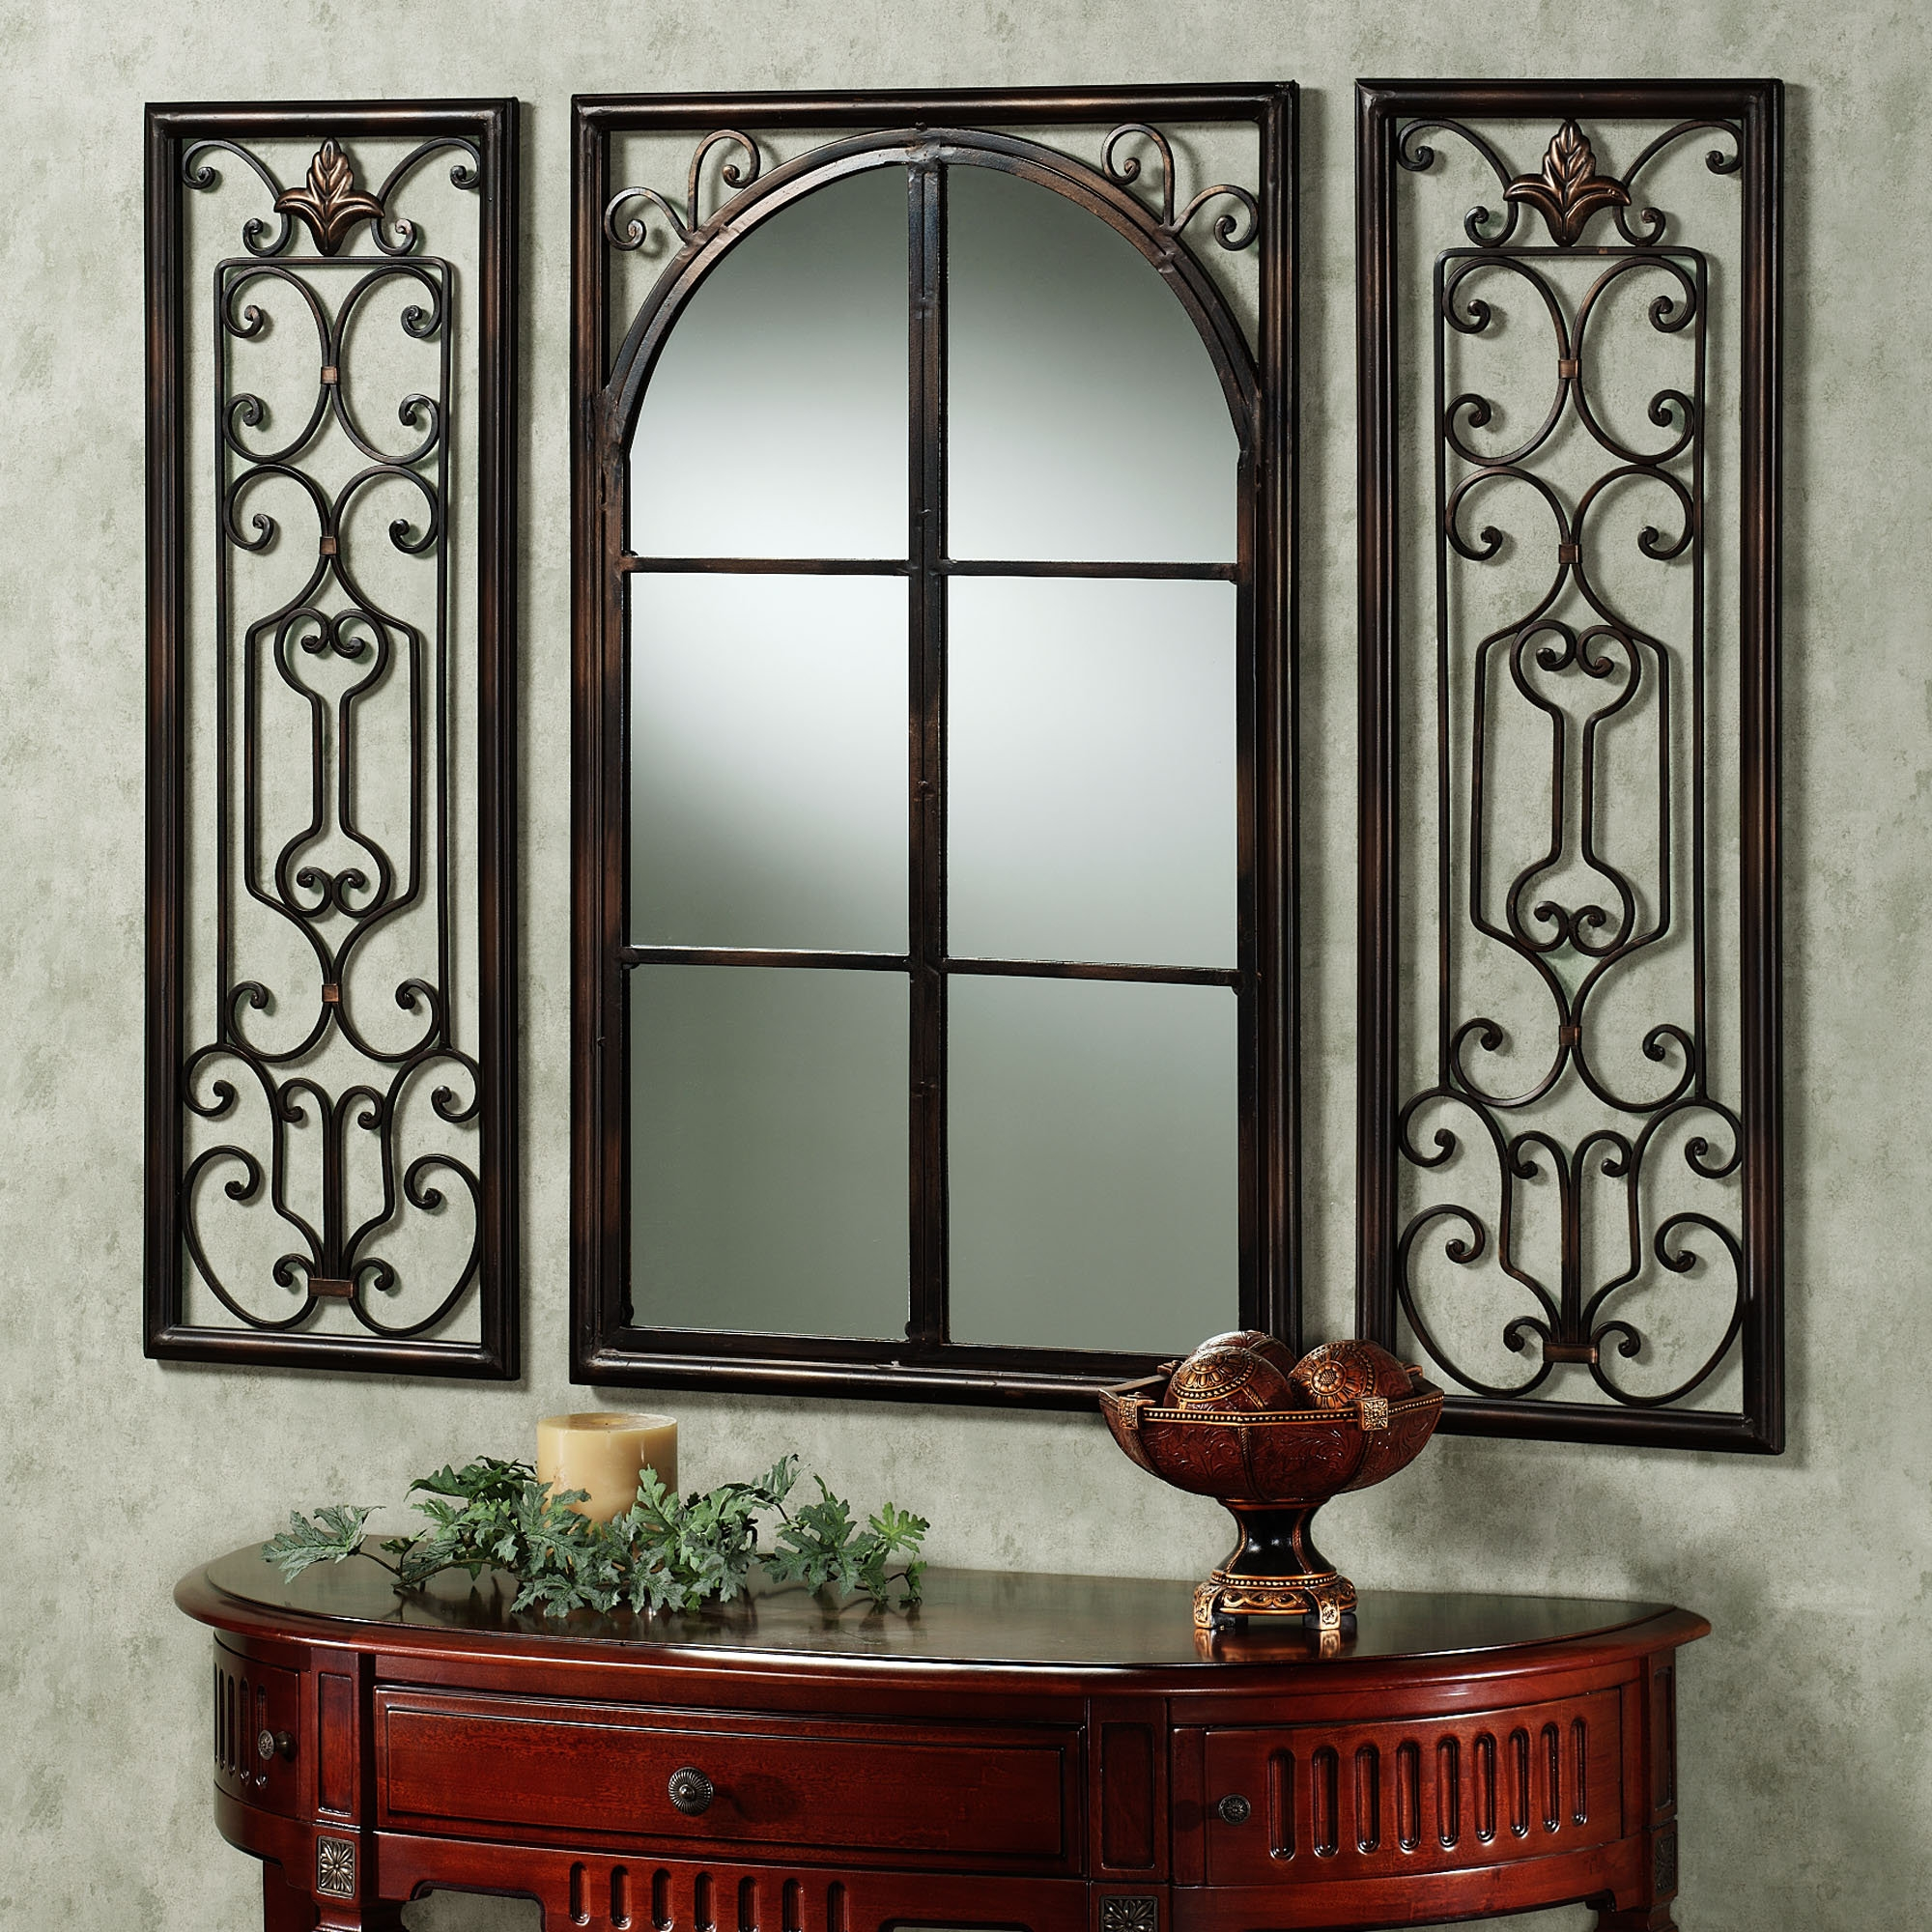 Bronze Finish Wall Mirrors Bronze Finish Wall Mirrors sophisticated iron graphic wall mirrors frames for wall decors 2000 X 2000